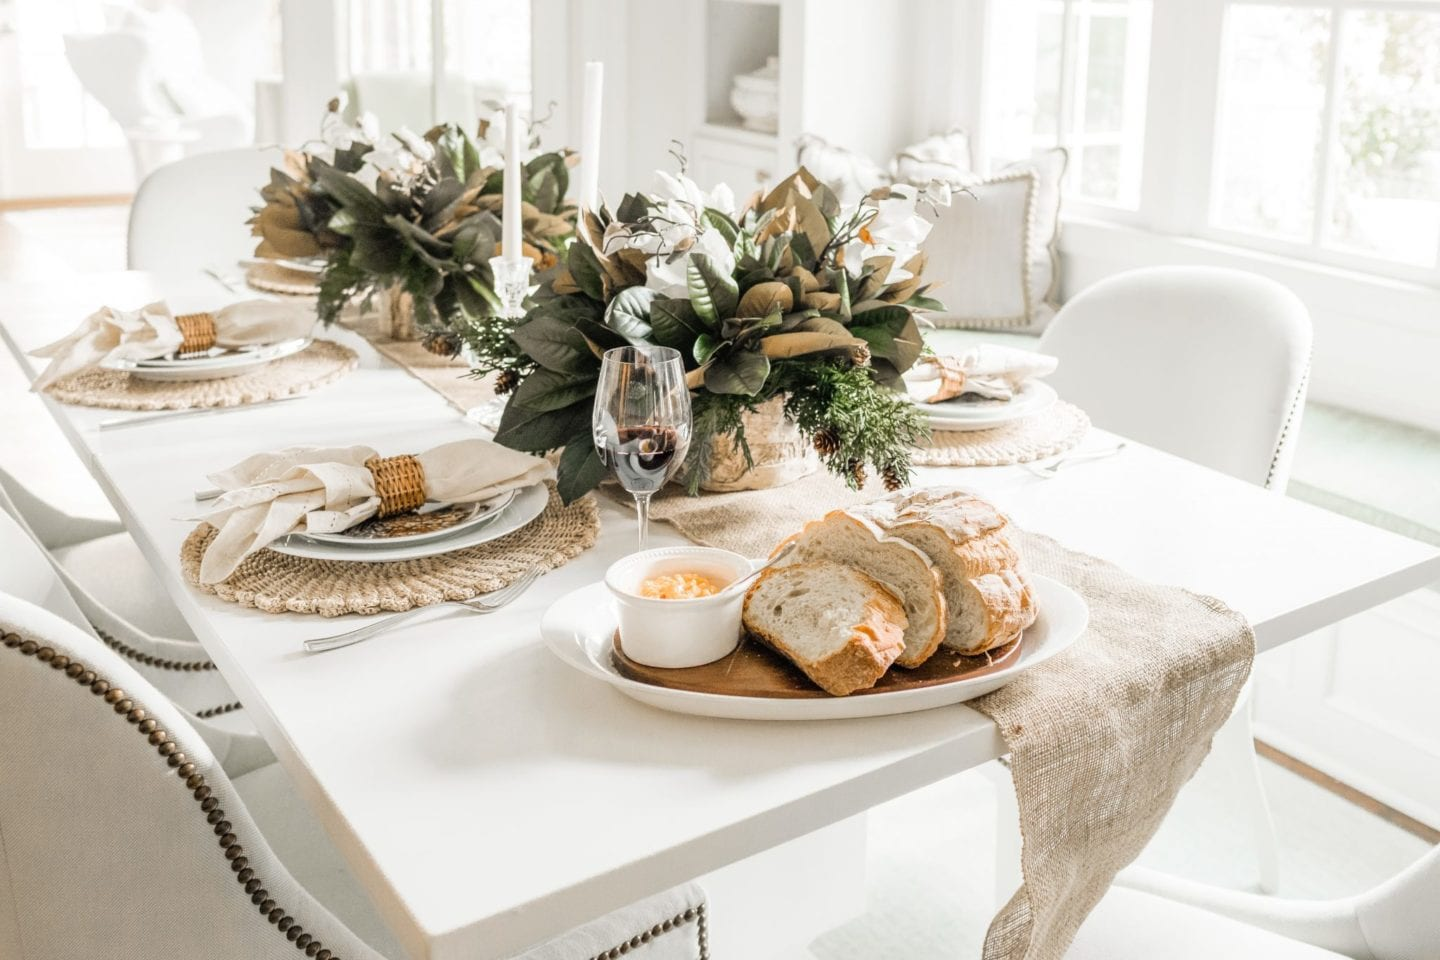 How to set a Thanksgiving table affordably and easily!